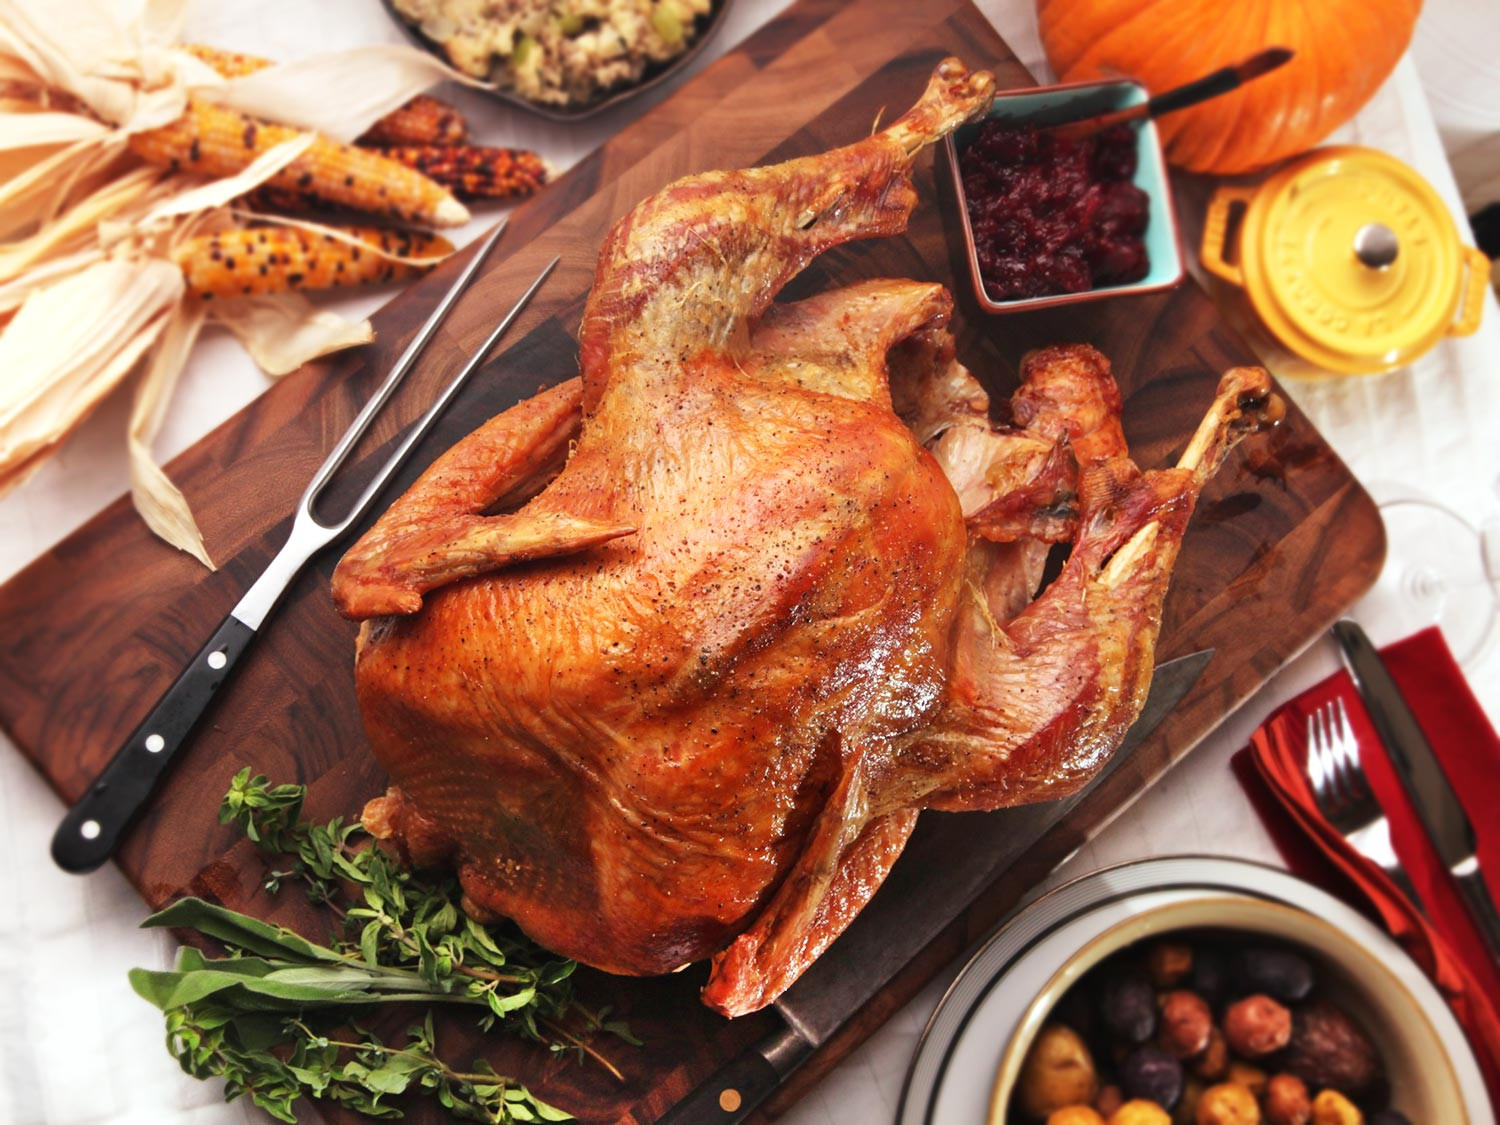 Best Roast Turkey Recipe For Thanksgiving  The Best Simple Roast Turkey With Gravy Recipe